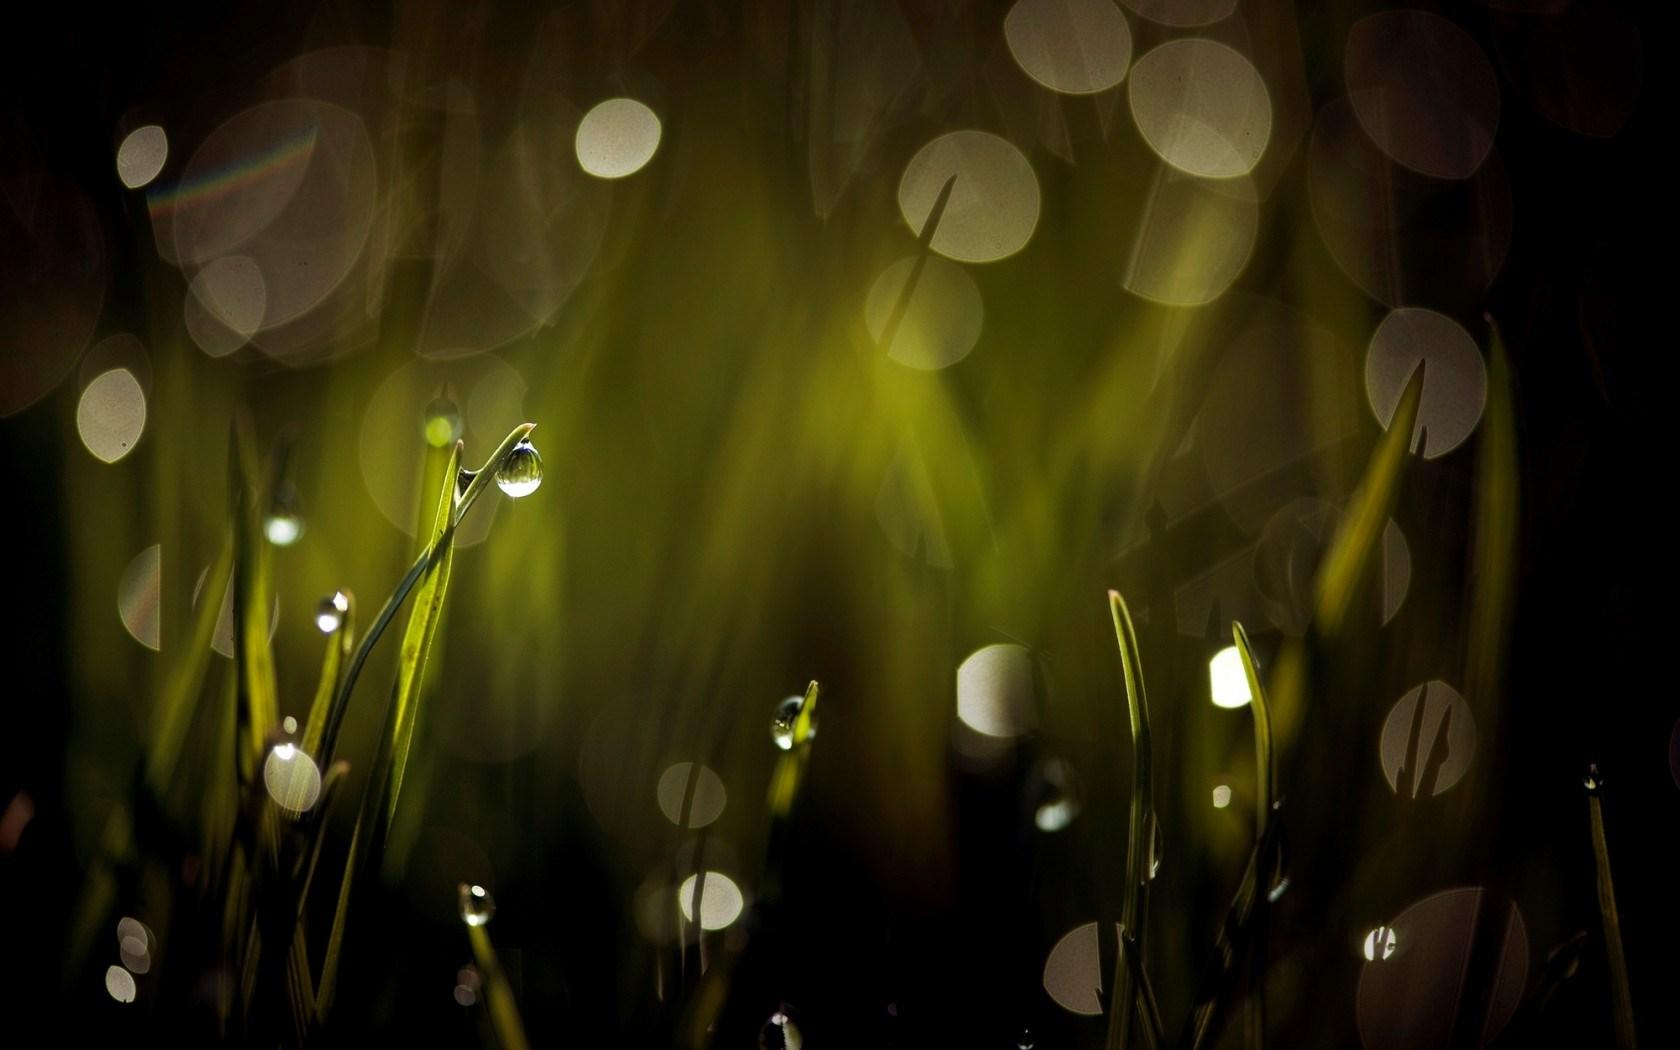 Amazing Grass Bokeh Wallpaper